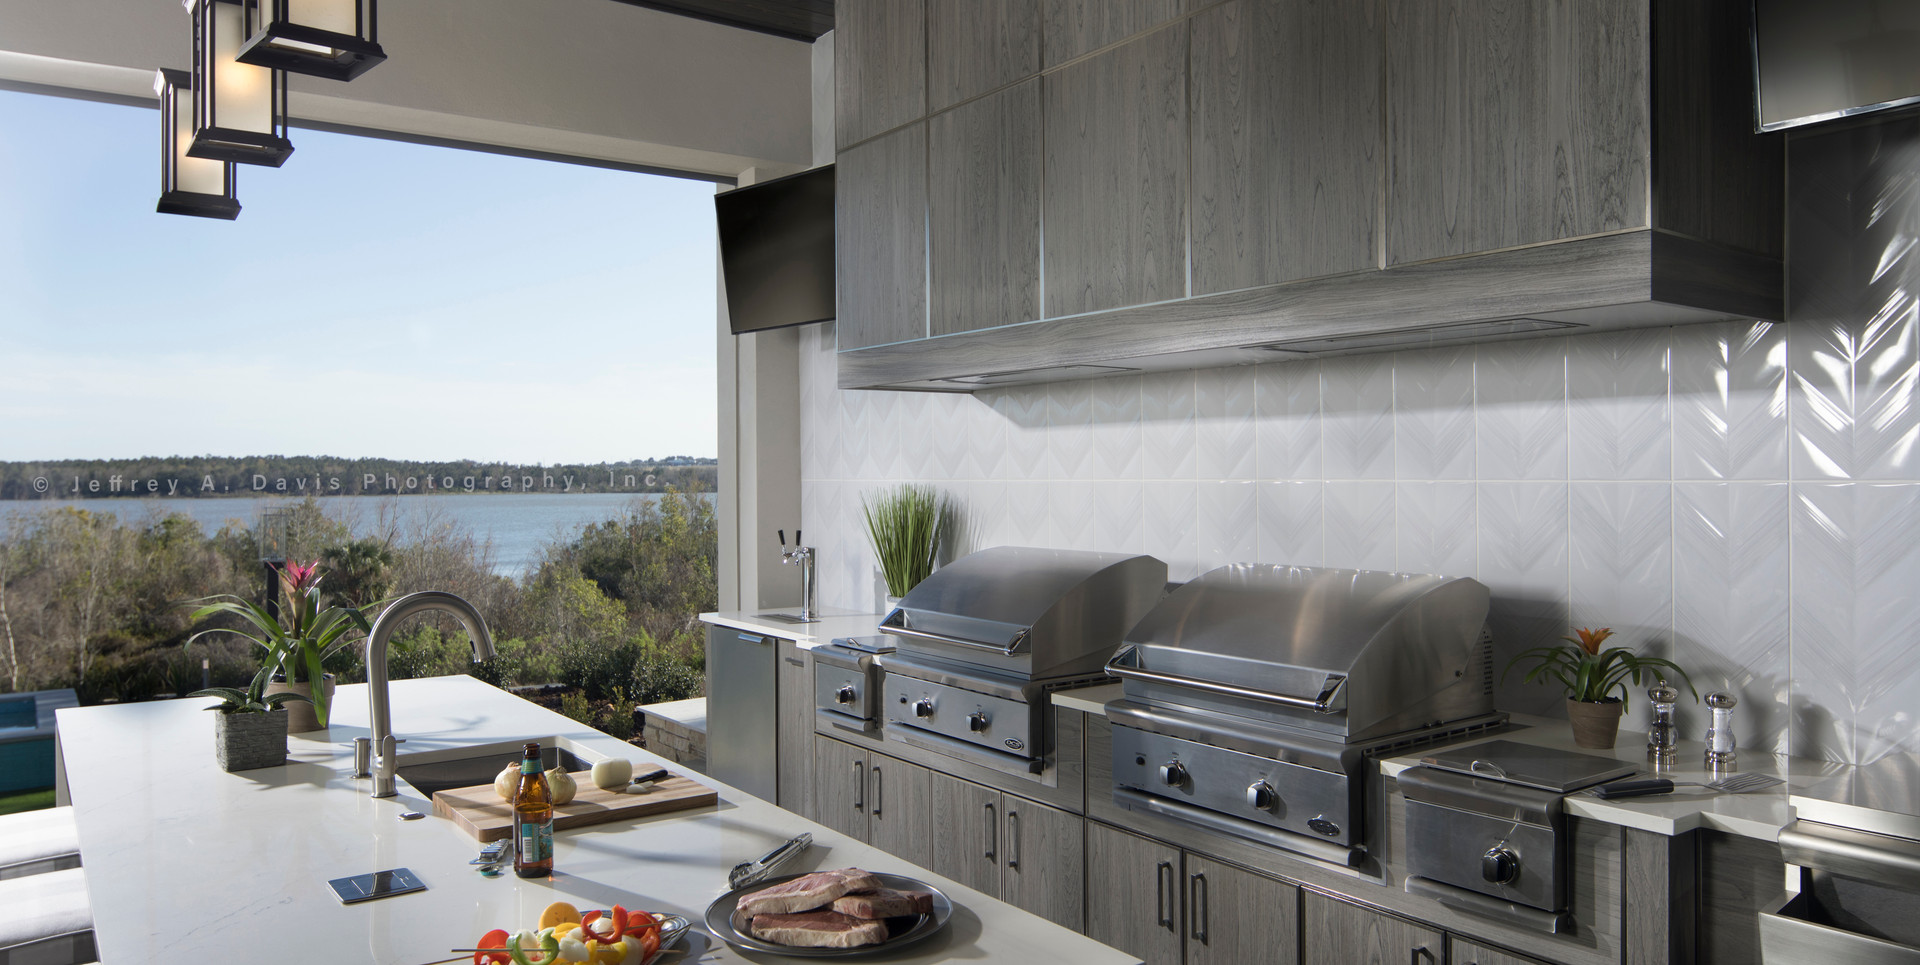 NAHB-patio-outdoor-grill-with-custom-hoo